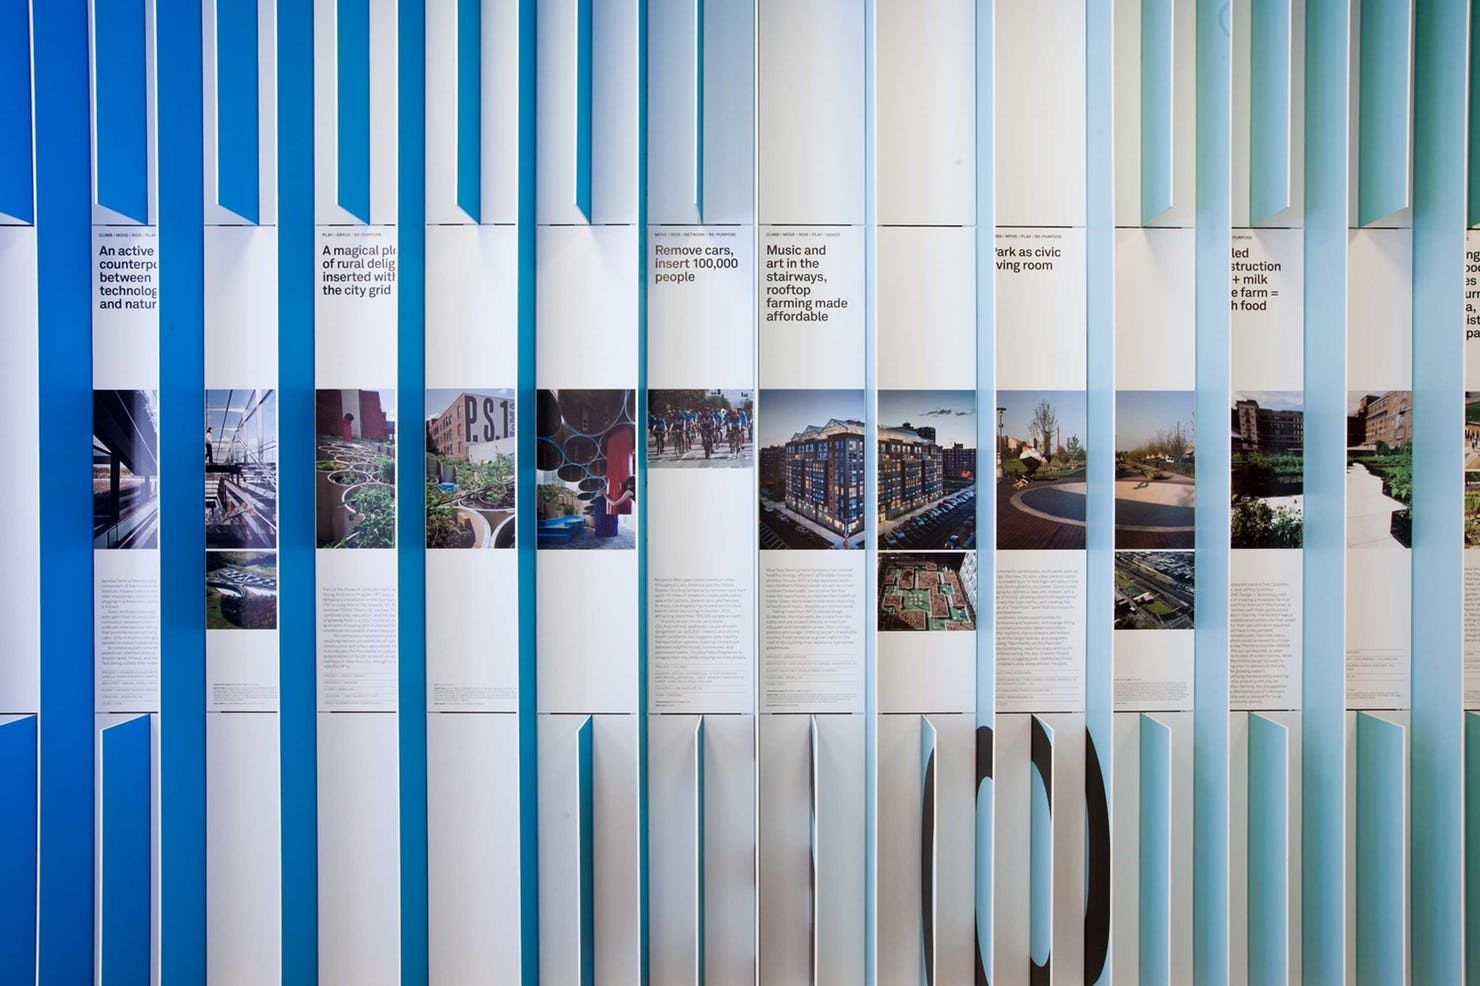 Projects Using Active Design Principles Are Displayed In The Grid Of The Panels History Wall Environmental Graphic Design Exhibition Design